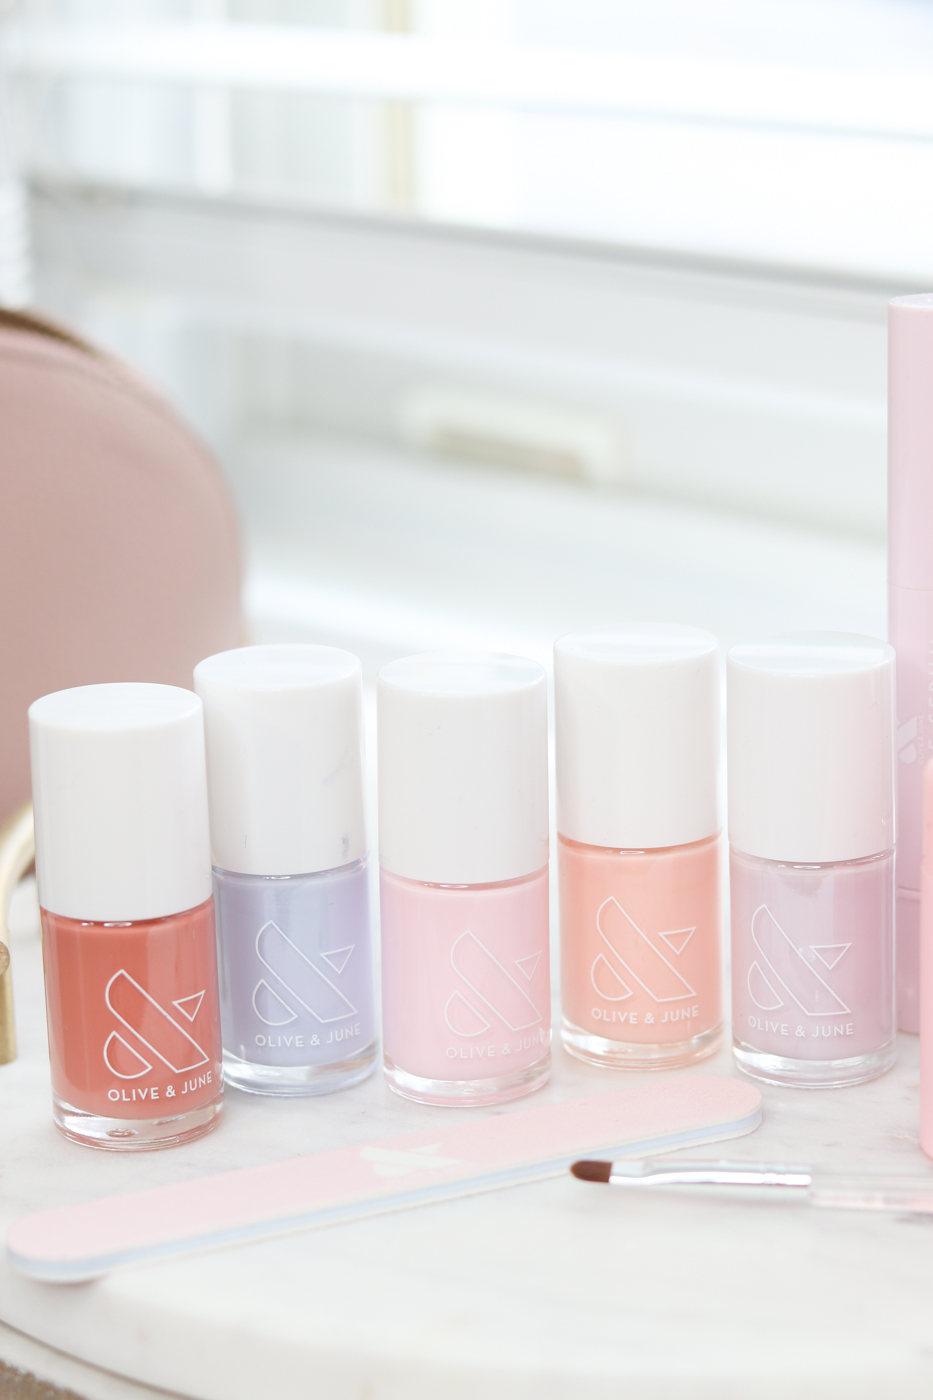 Olive and June Nail Polish Review | Olive and June Malibu Sunset Set